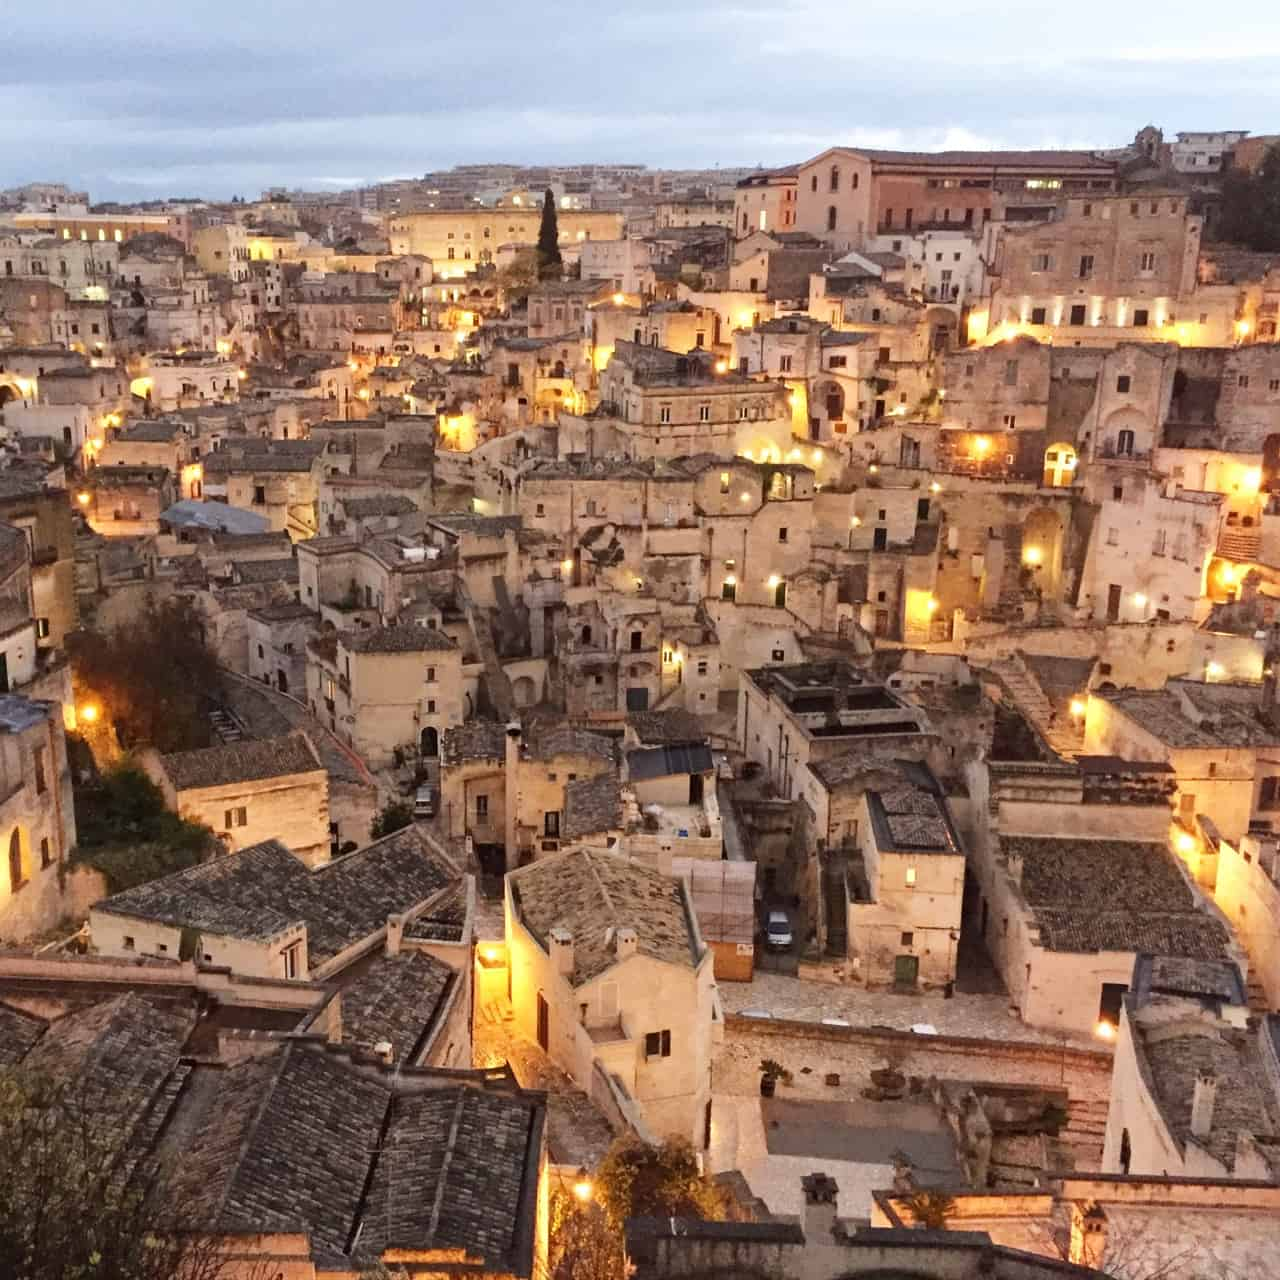 Matera – Italy's ancient cave city